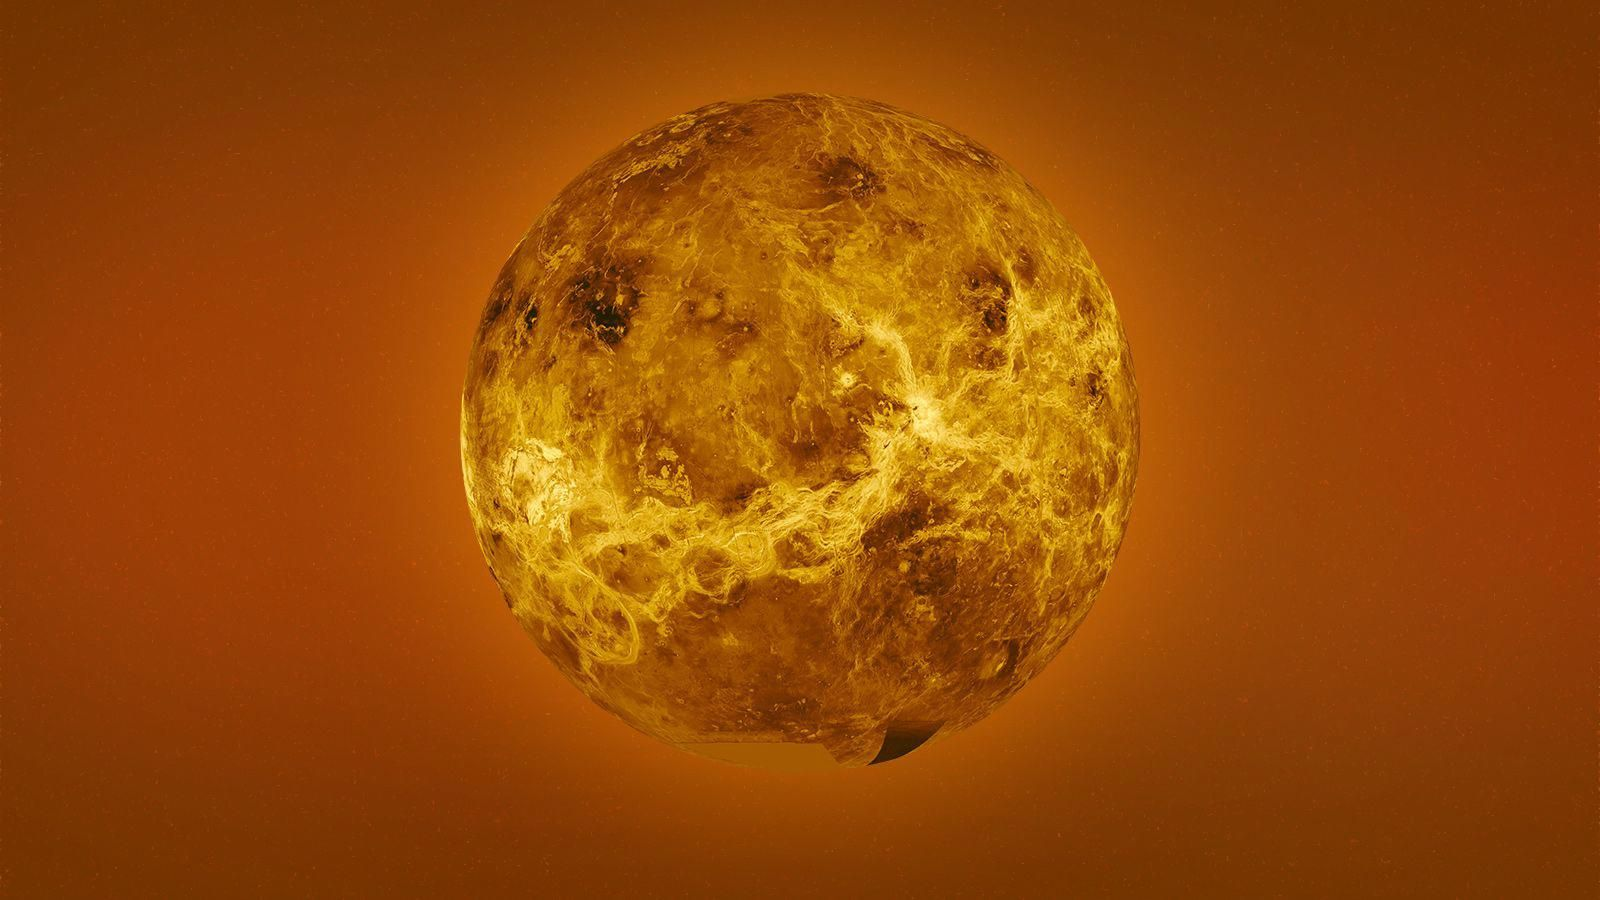 Venus Is The Second Planet From The Sun And Our Closest